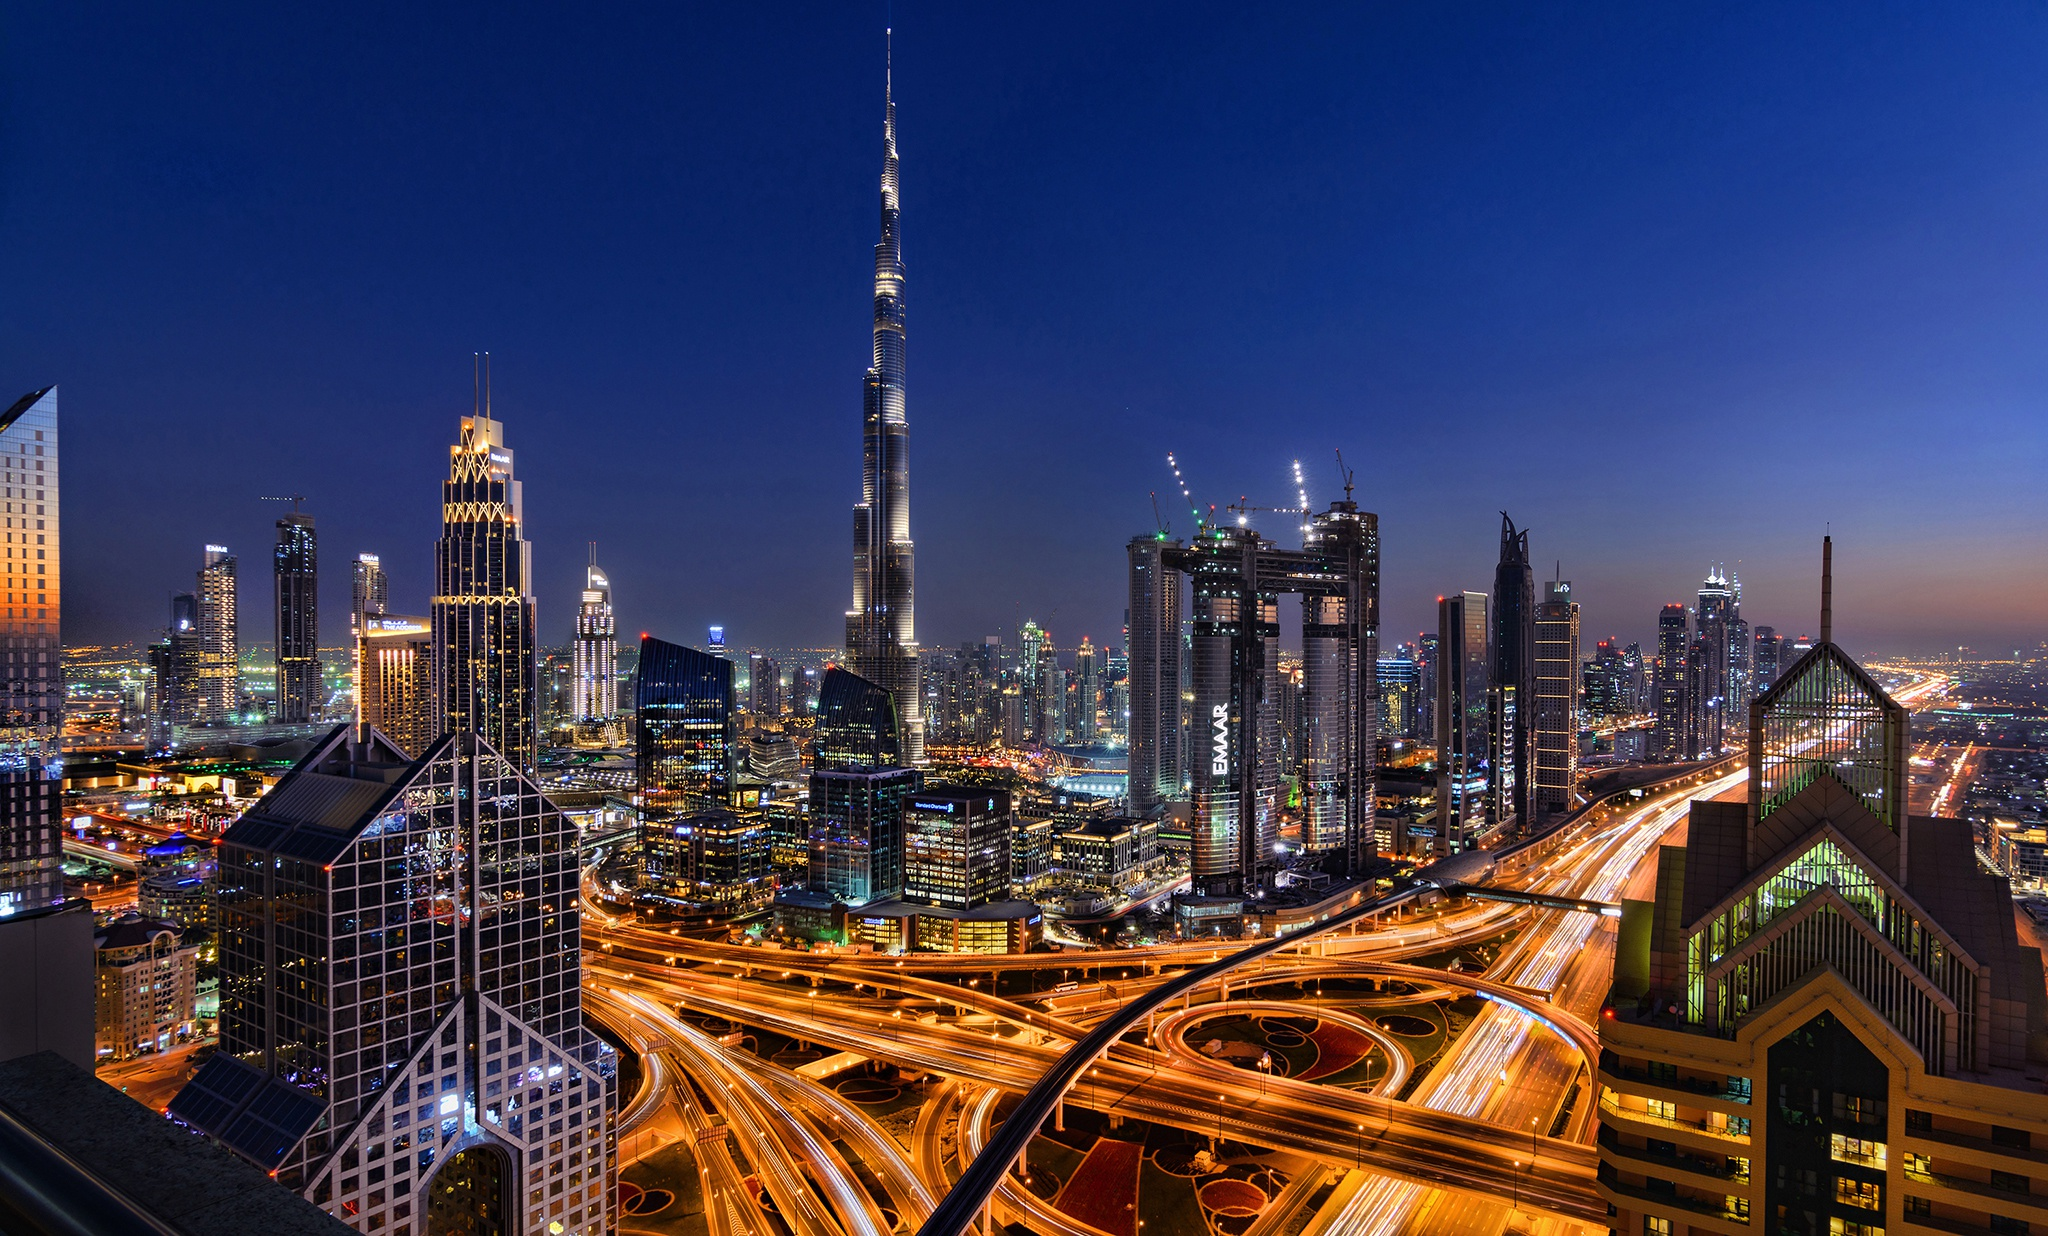 Download wallpaper road uae night lights dubai the for Home wallpaper uae